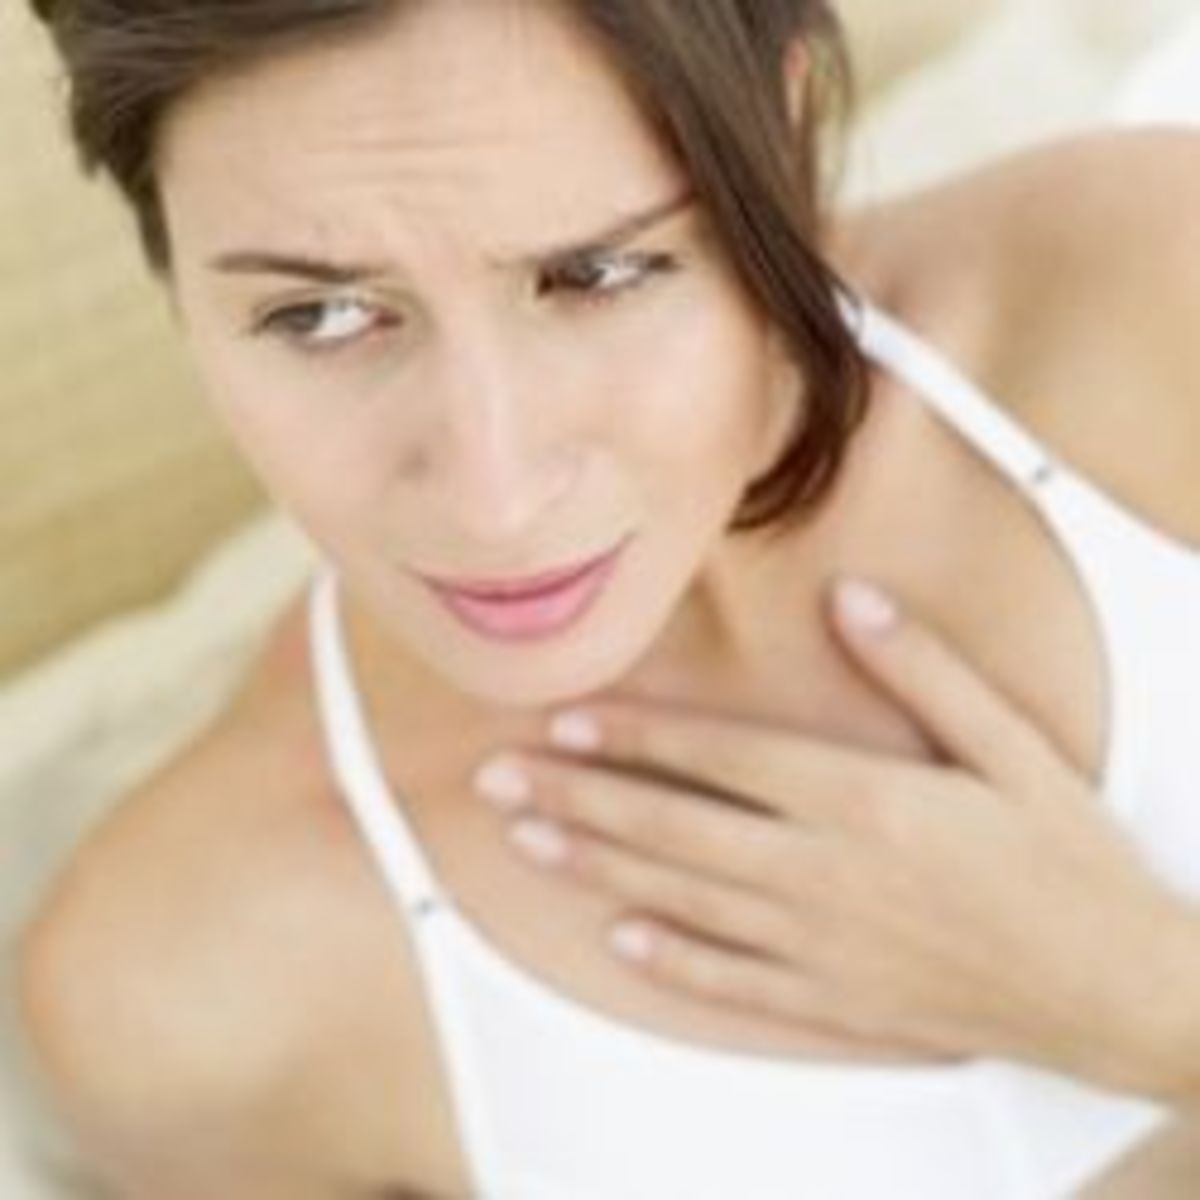 signs-and-symptoms-of-acid-reflux